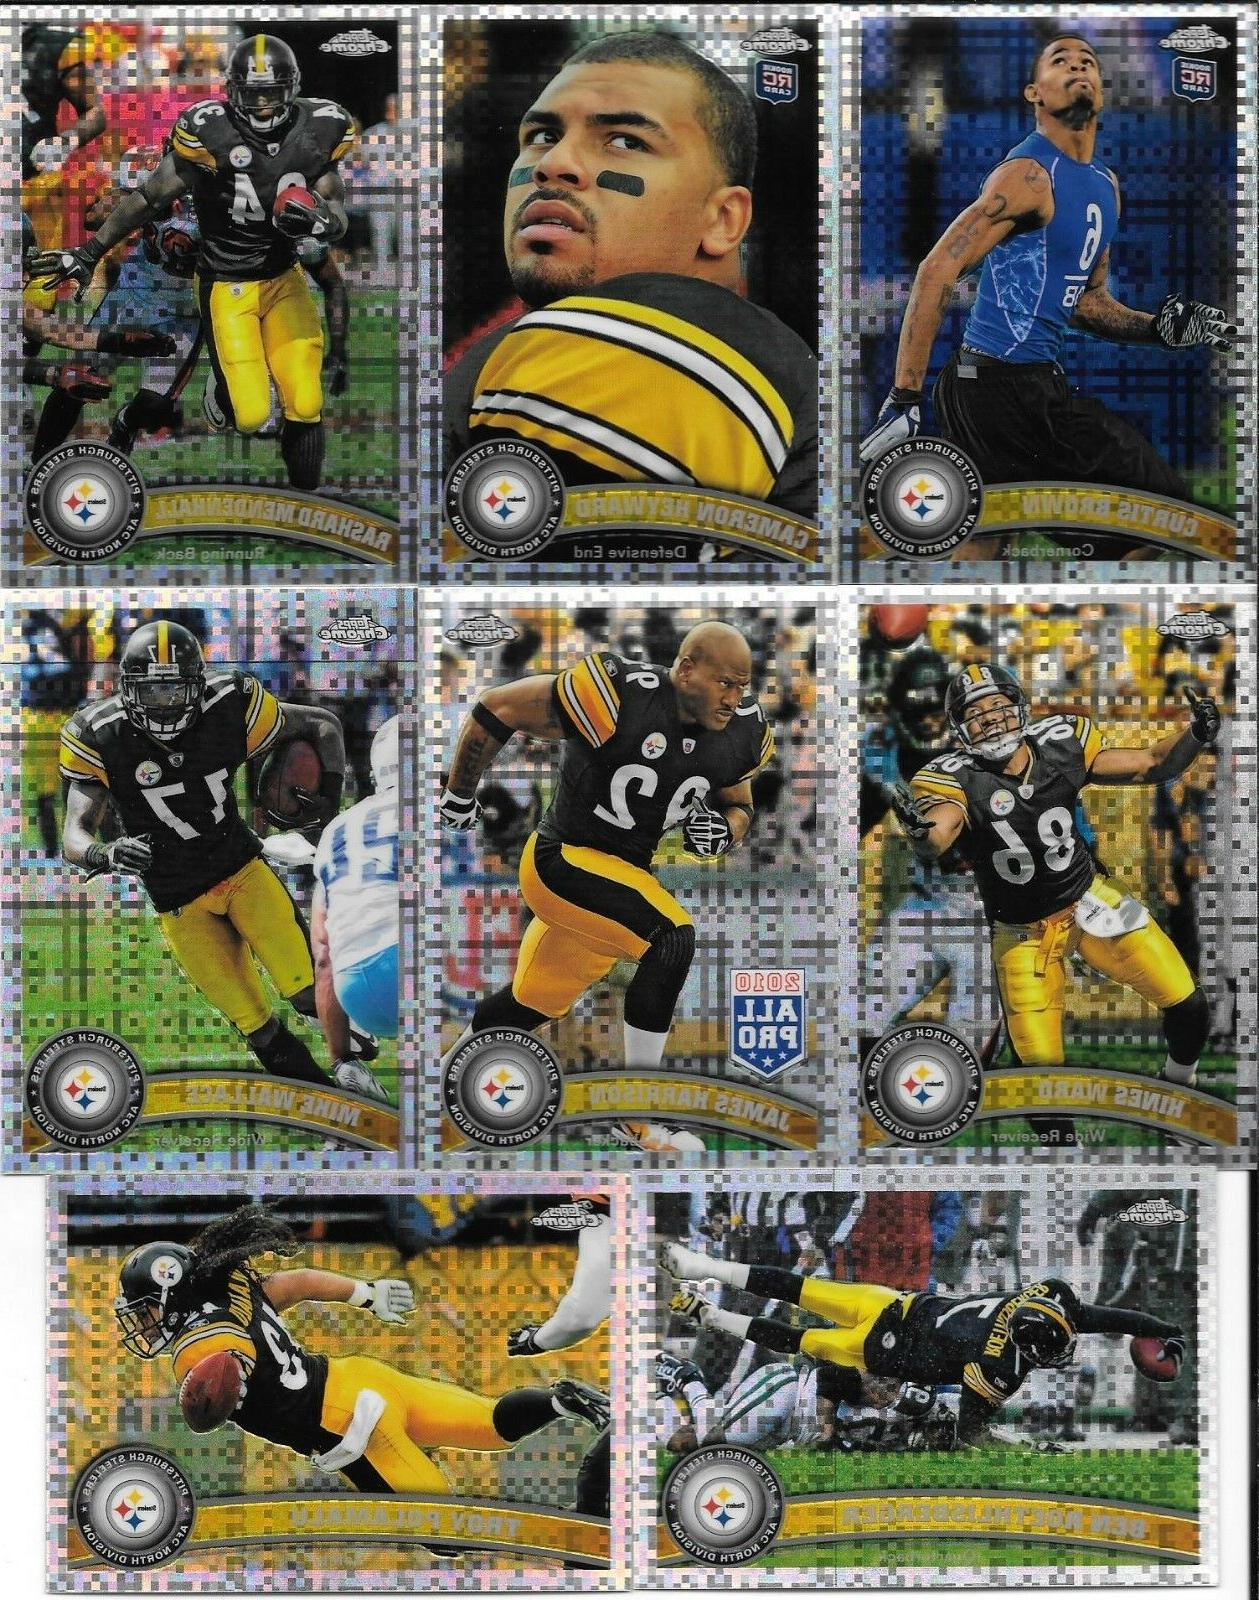 2011 topps chrome pittsburgh steelers xfractor parallel